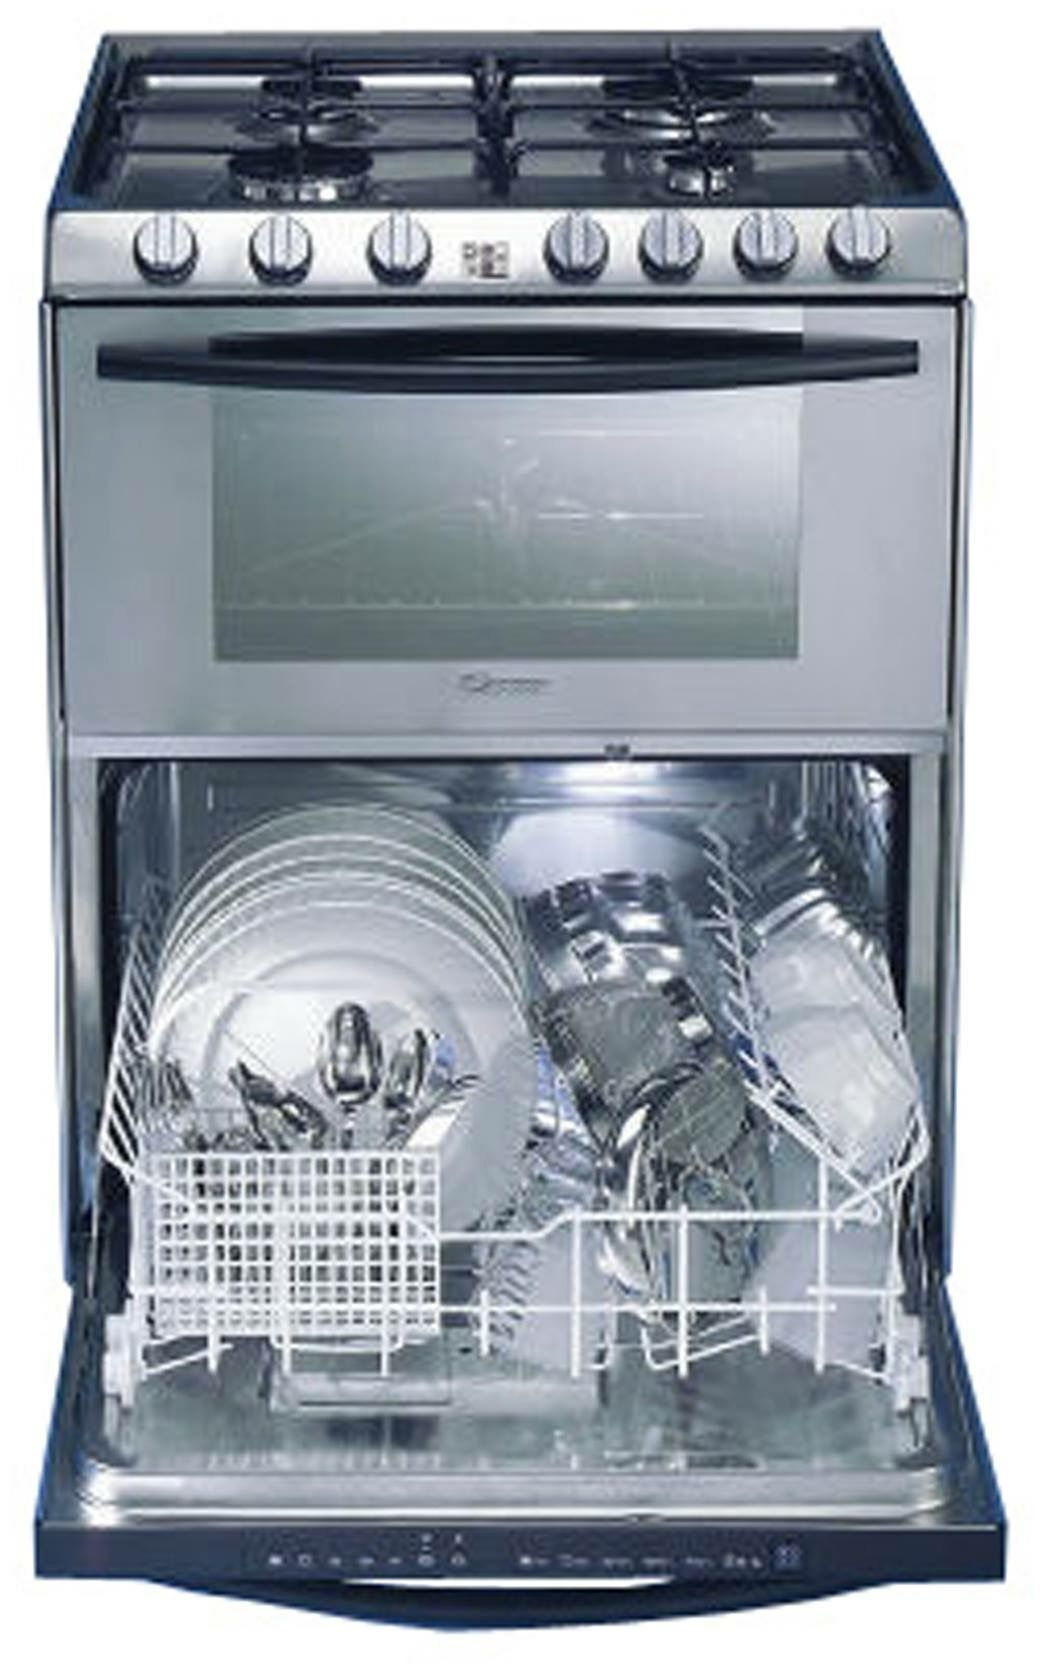 Stove Oven And Dishwasher In One